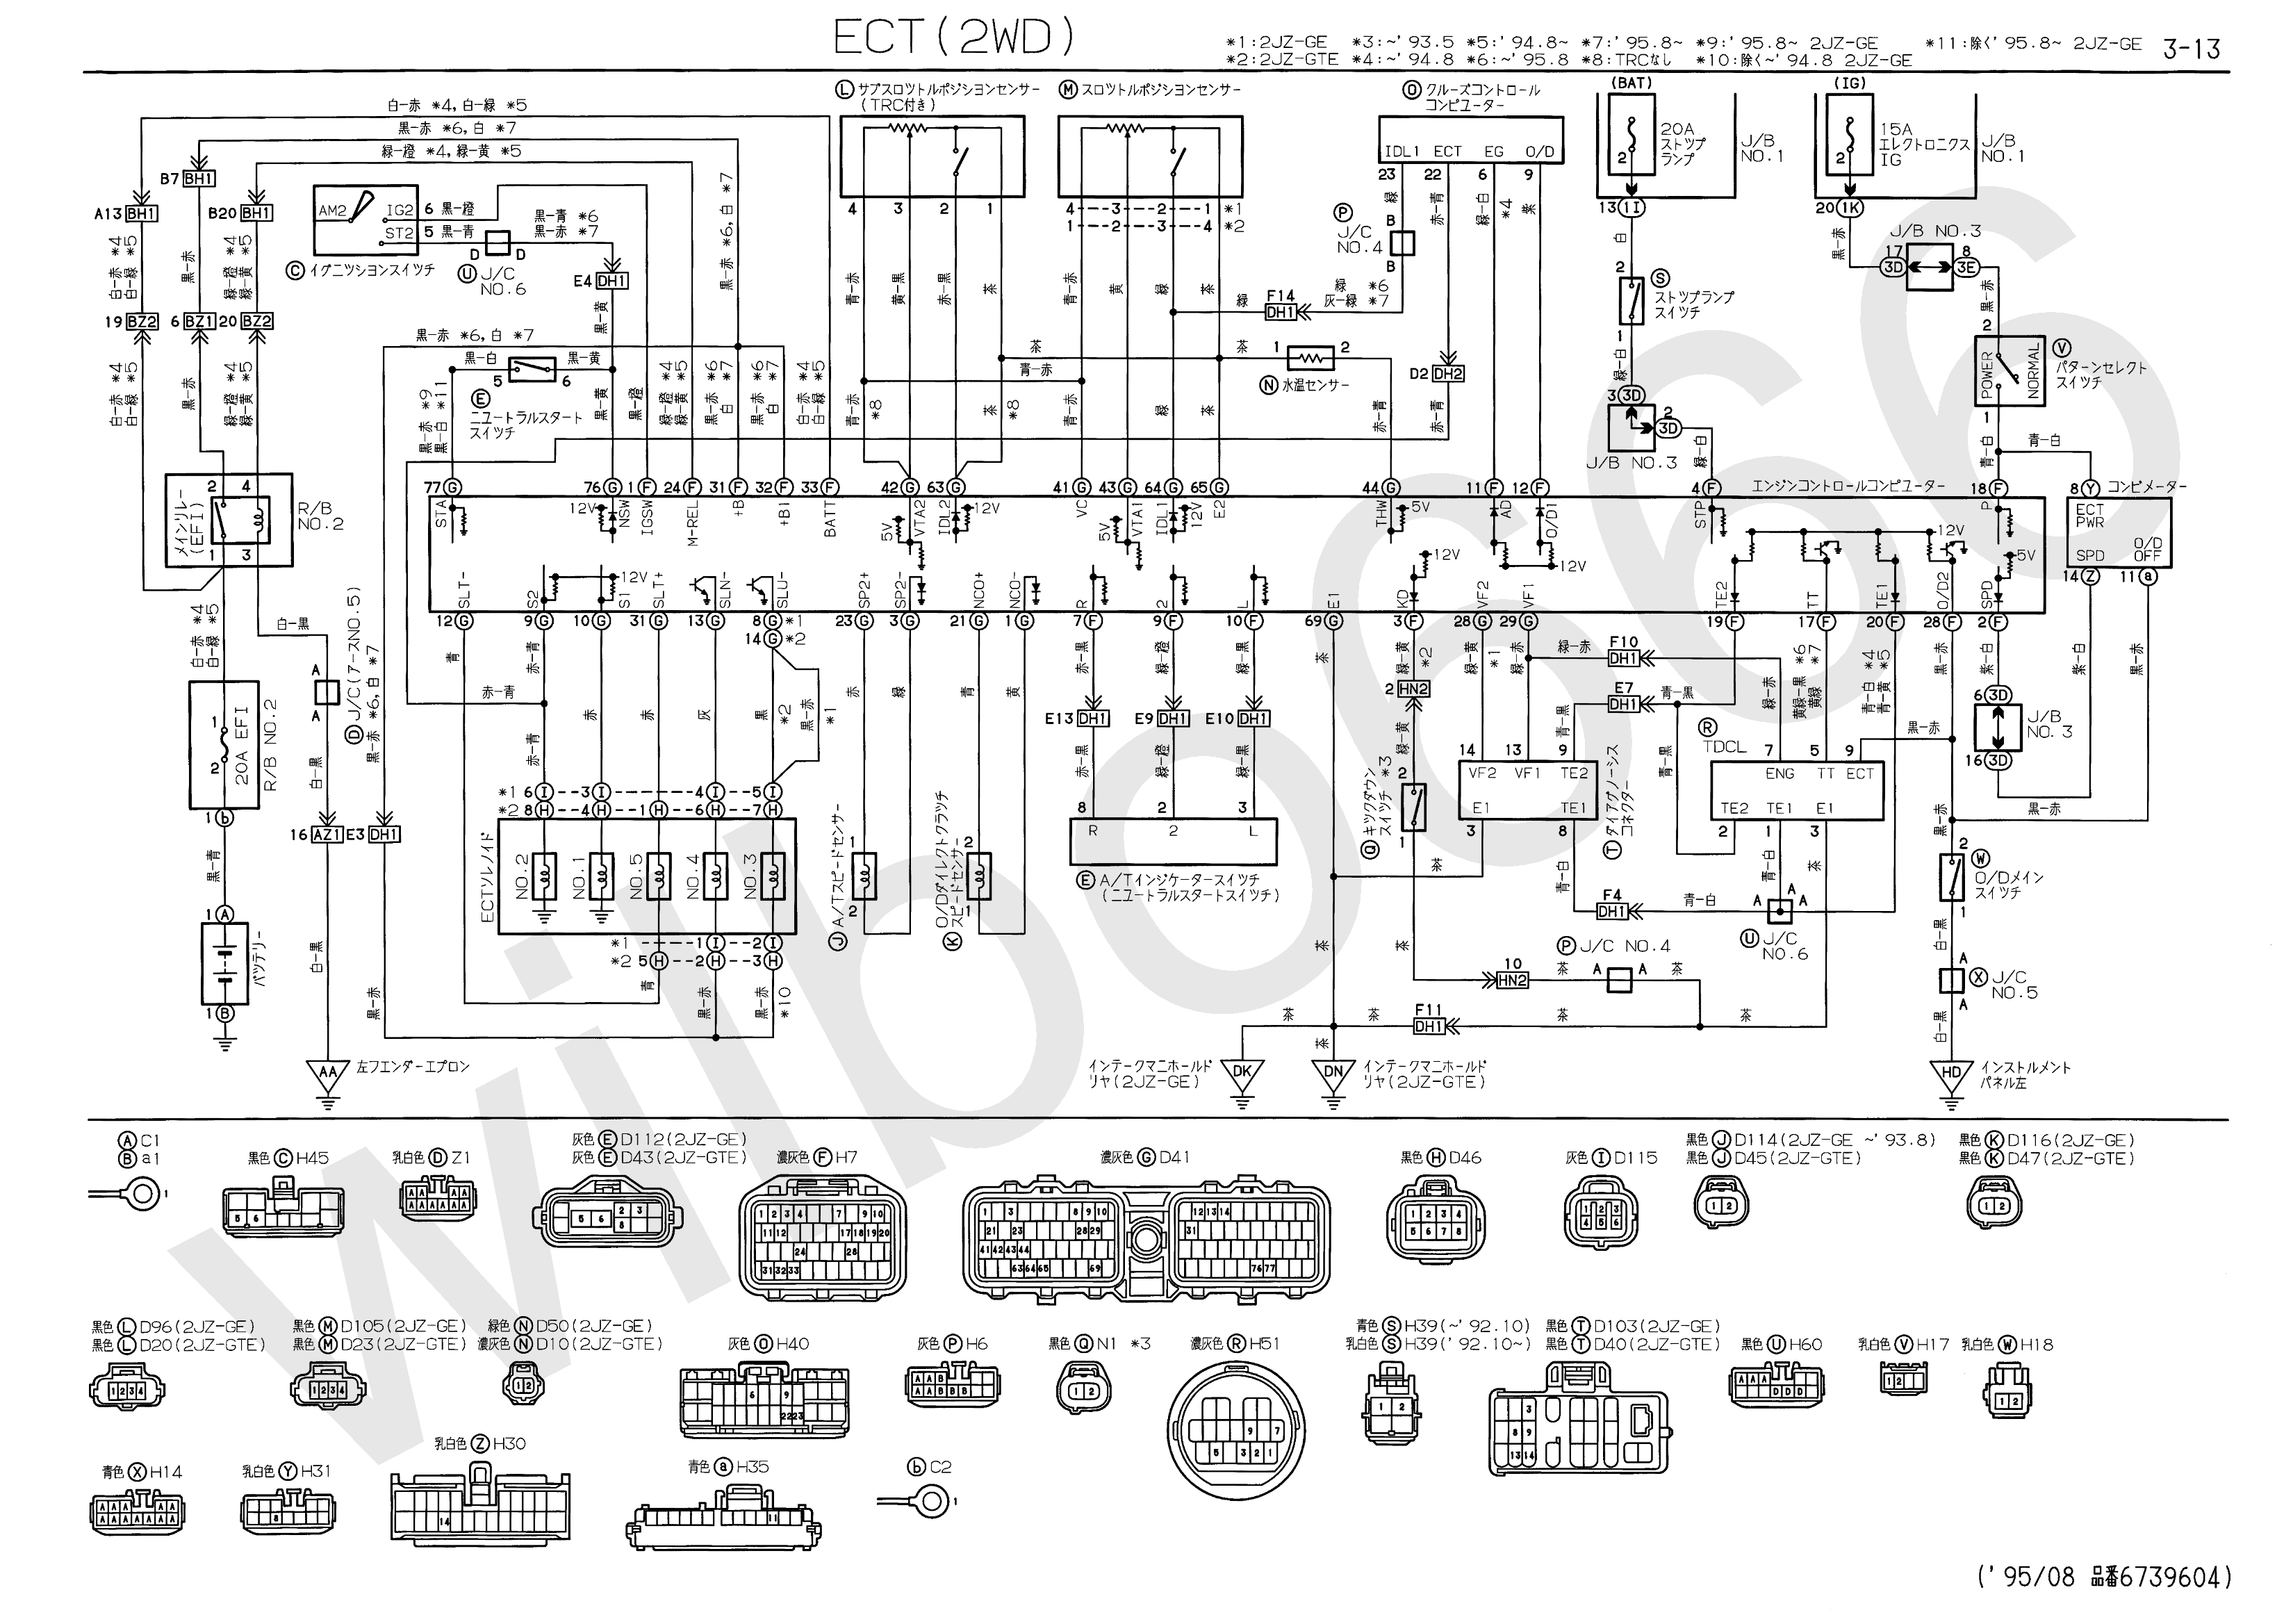 JZS14%23%2C+UZS14%23+Electrical+Wiring+Diagram+6739604+3 13 toyota a56811 wiring diagram toyota wiring diagrams instruction toyota tamaraw fx electrical wiring diagram at n-0.co